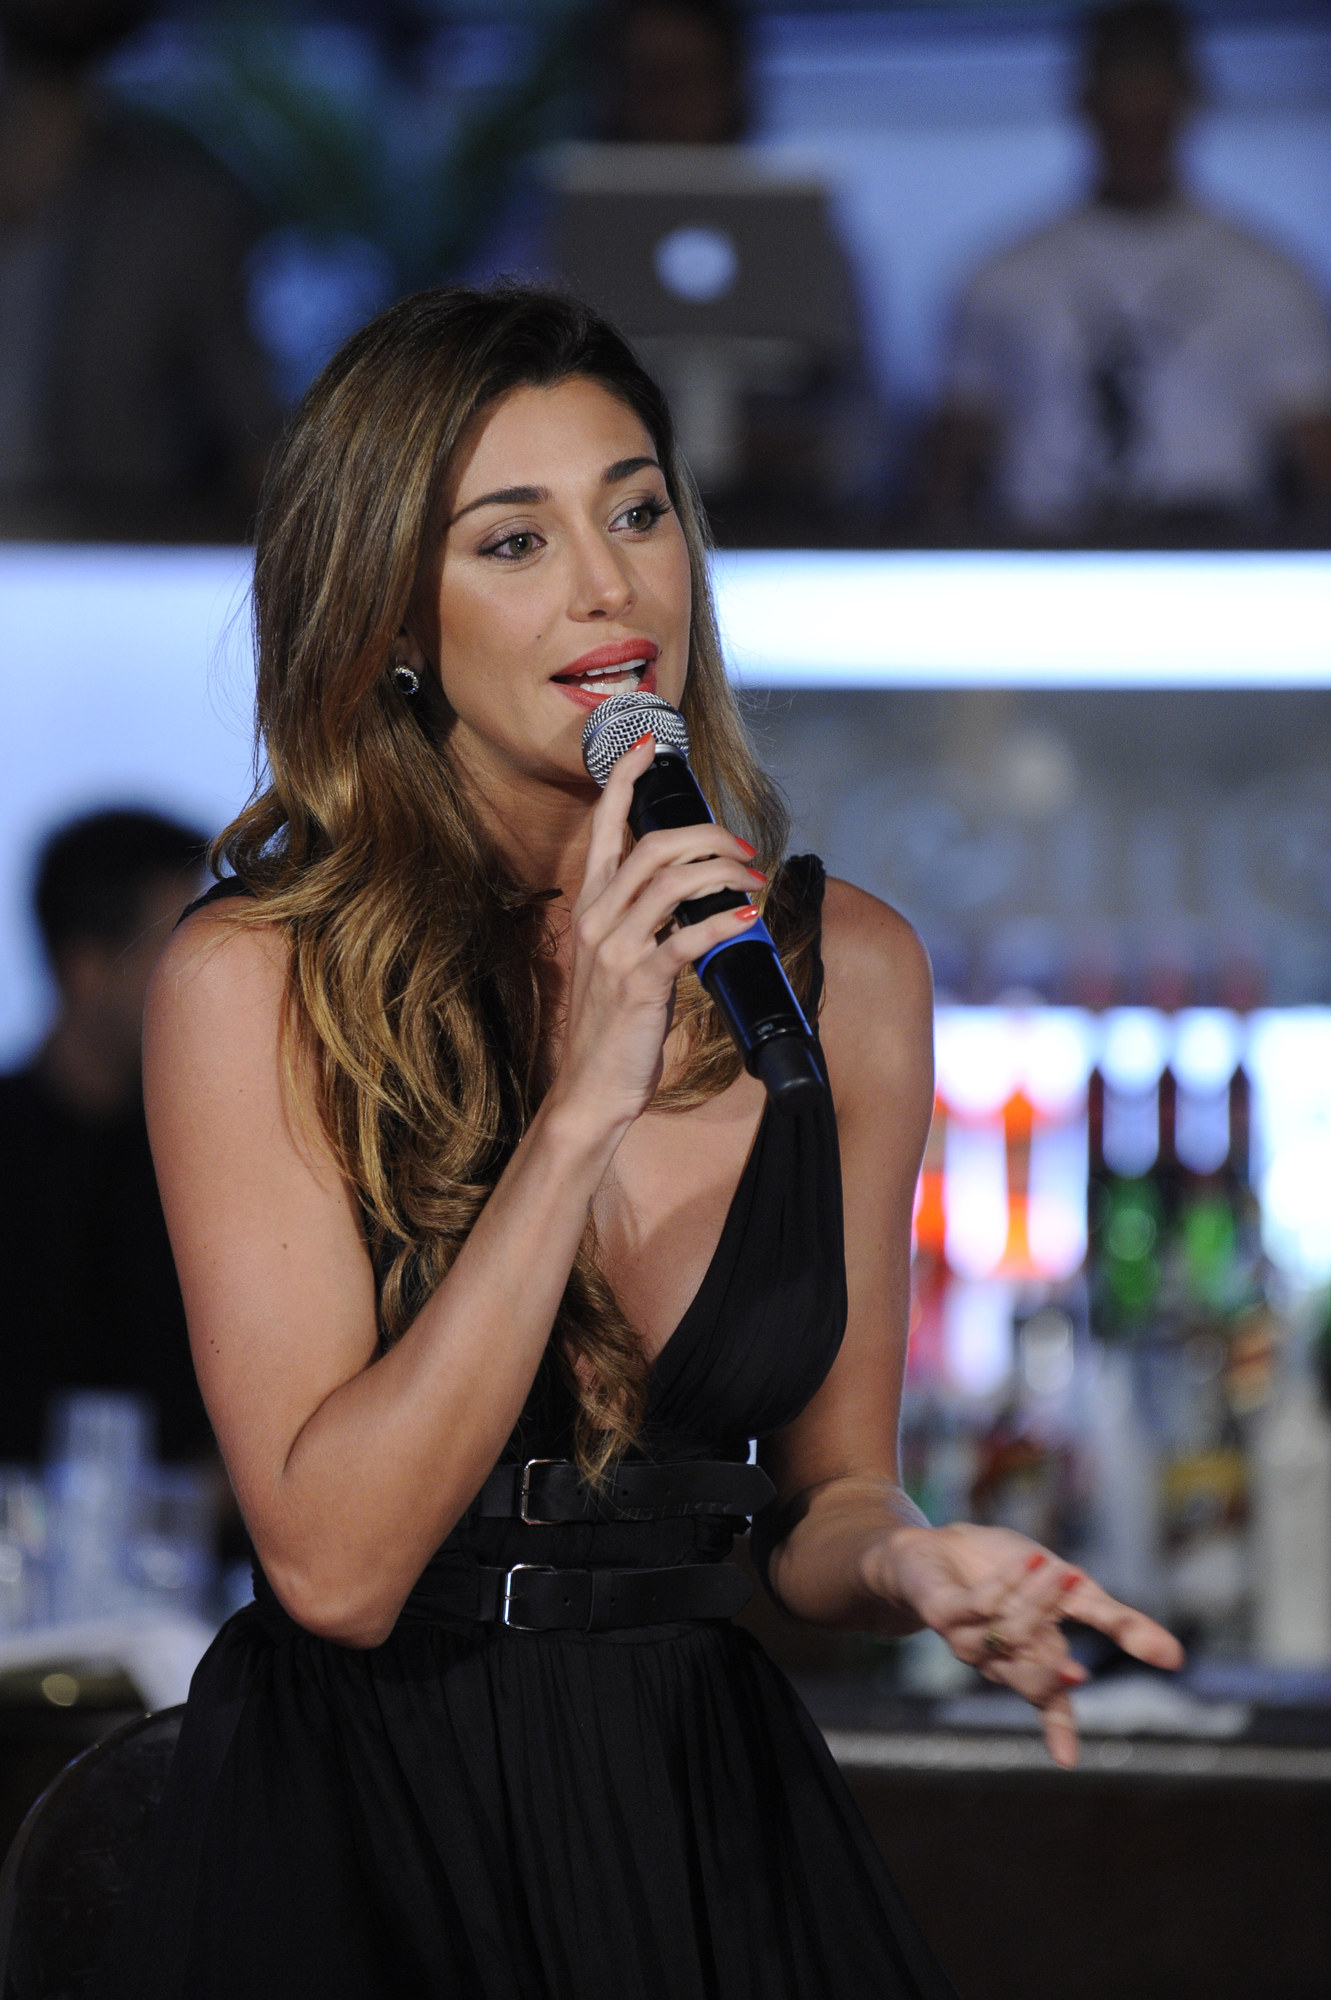 Belen Rodriguez Candids at event for Renault in Milan